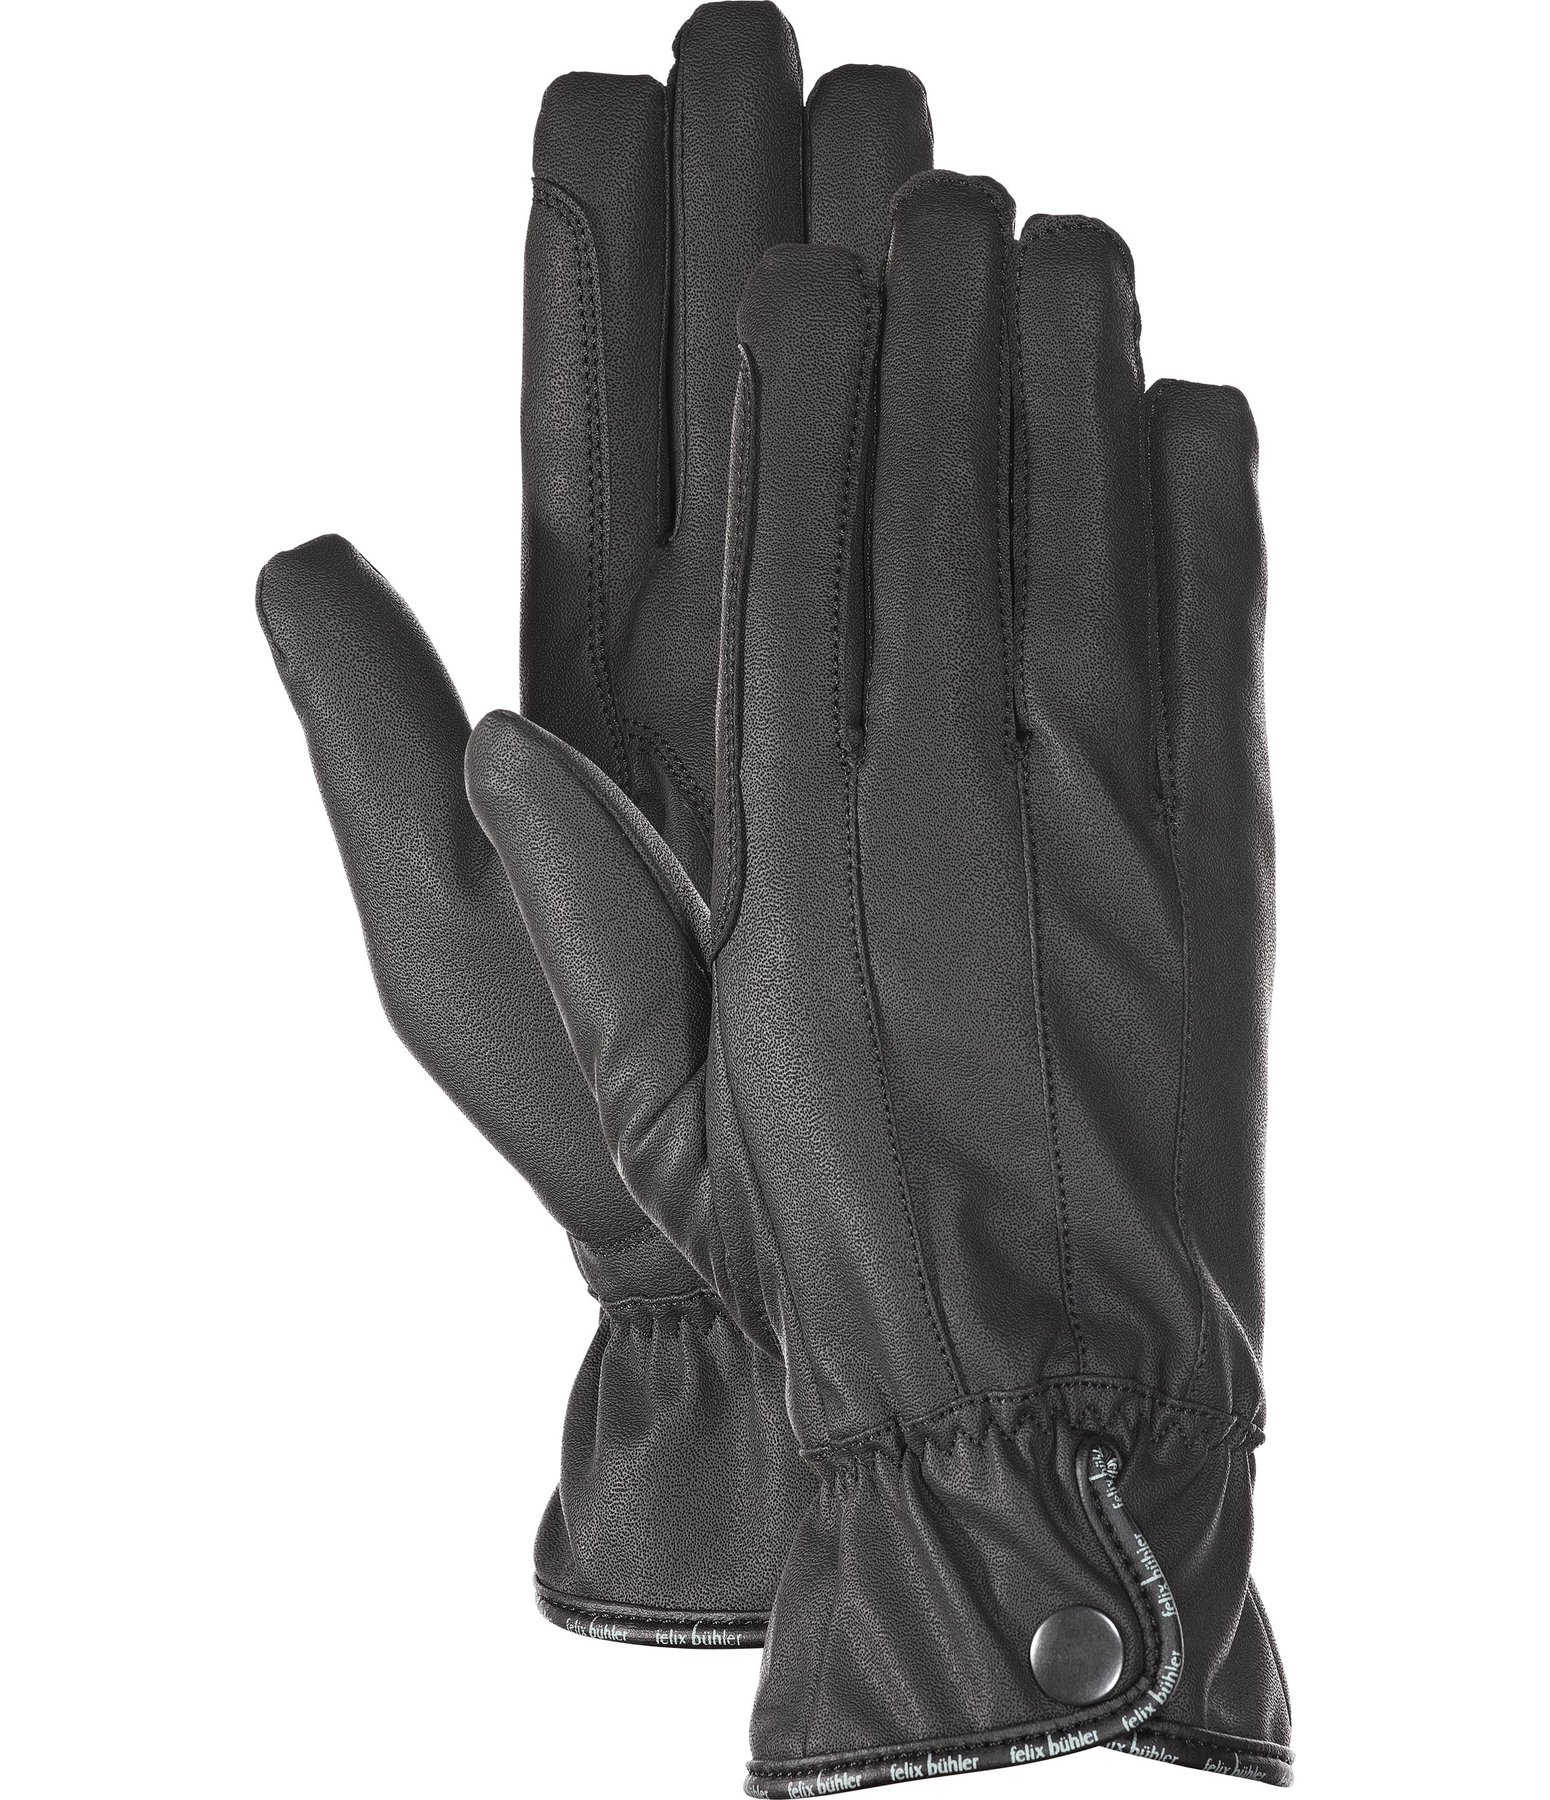 Winter Riding Gloves Lissome - Winter Riding Gloves